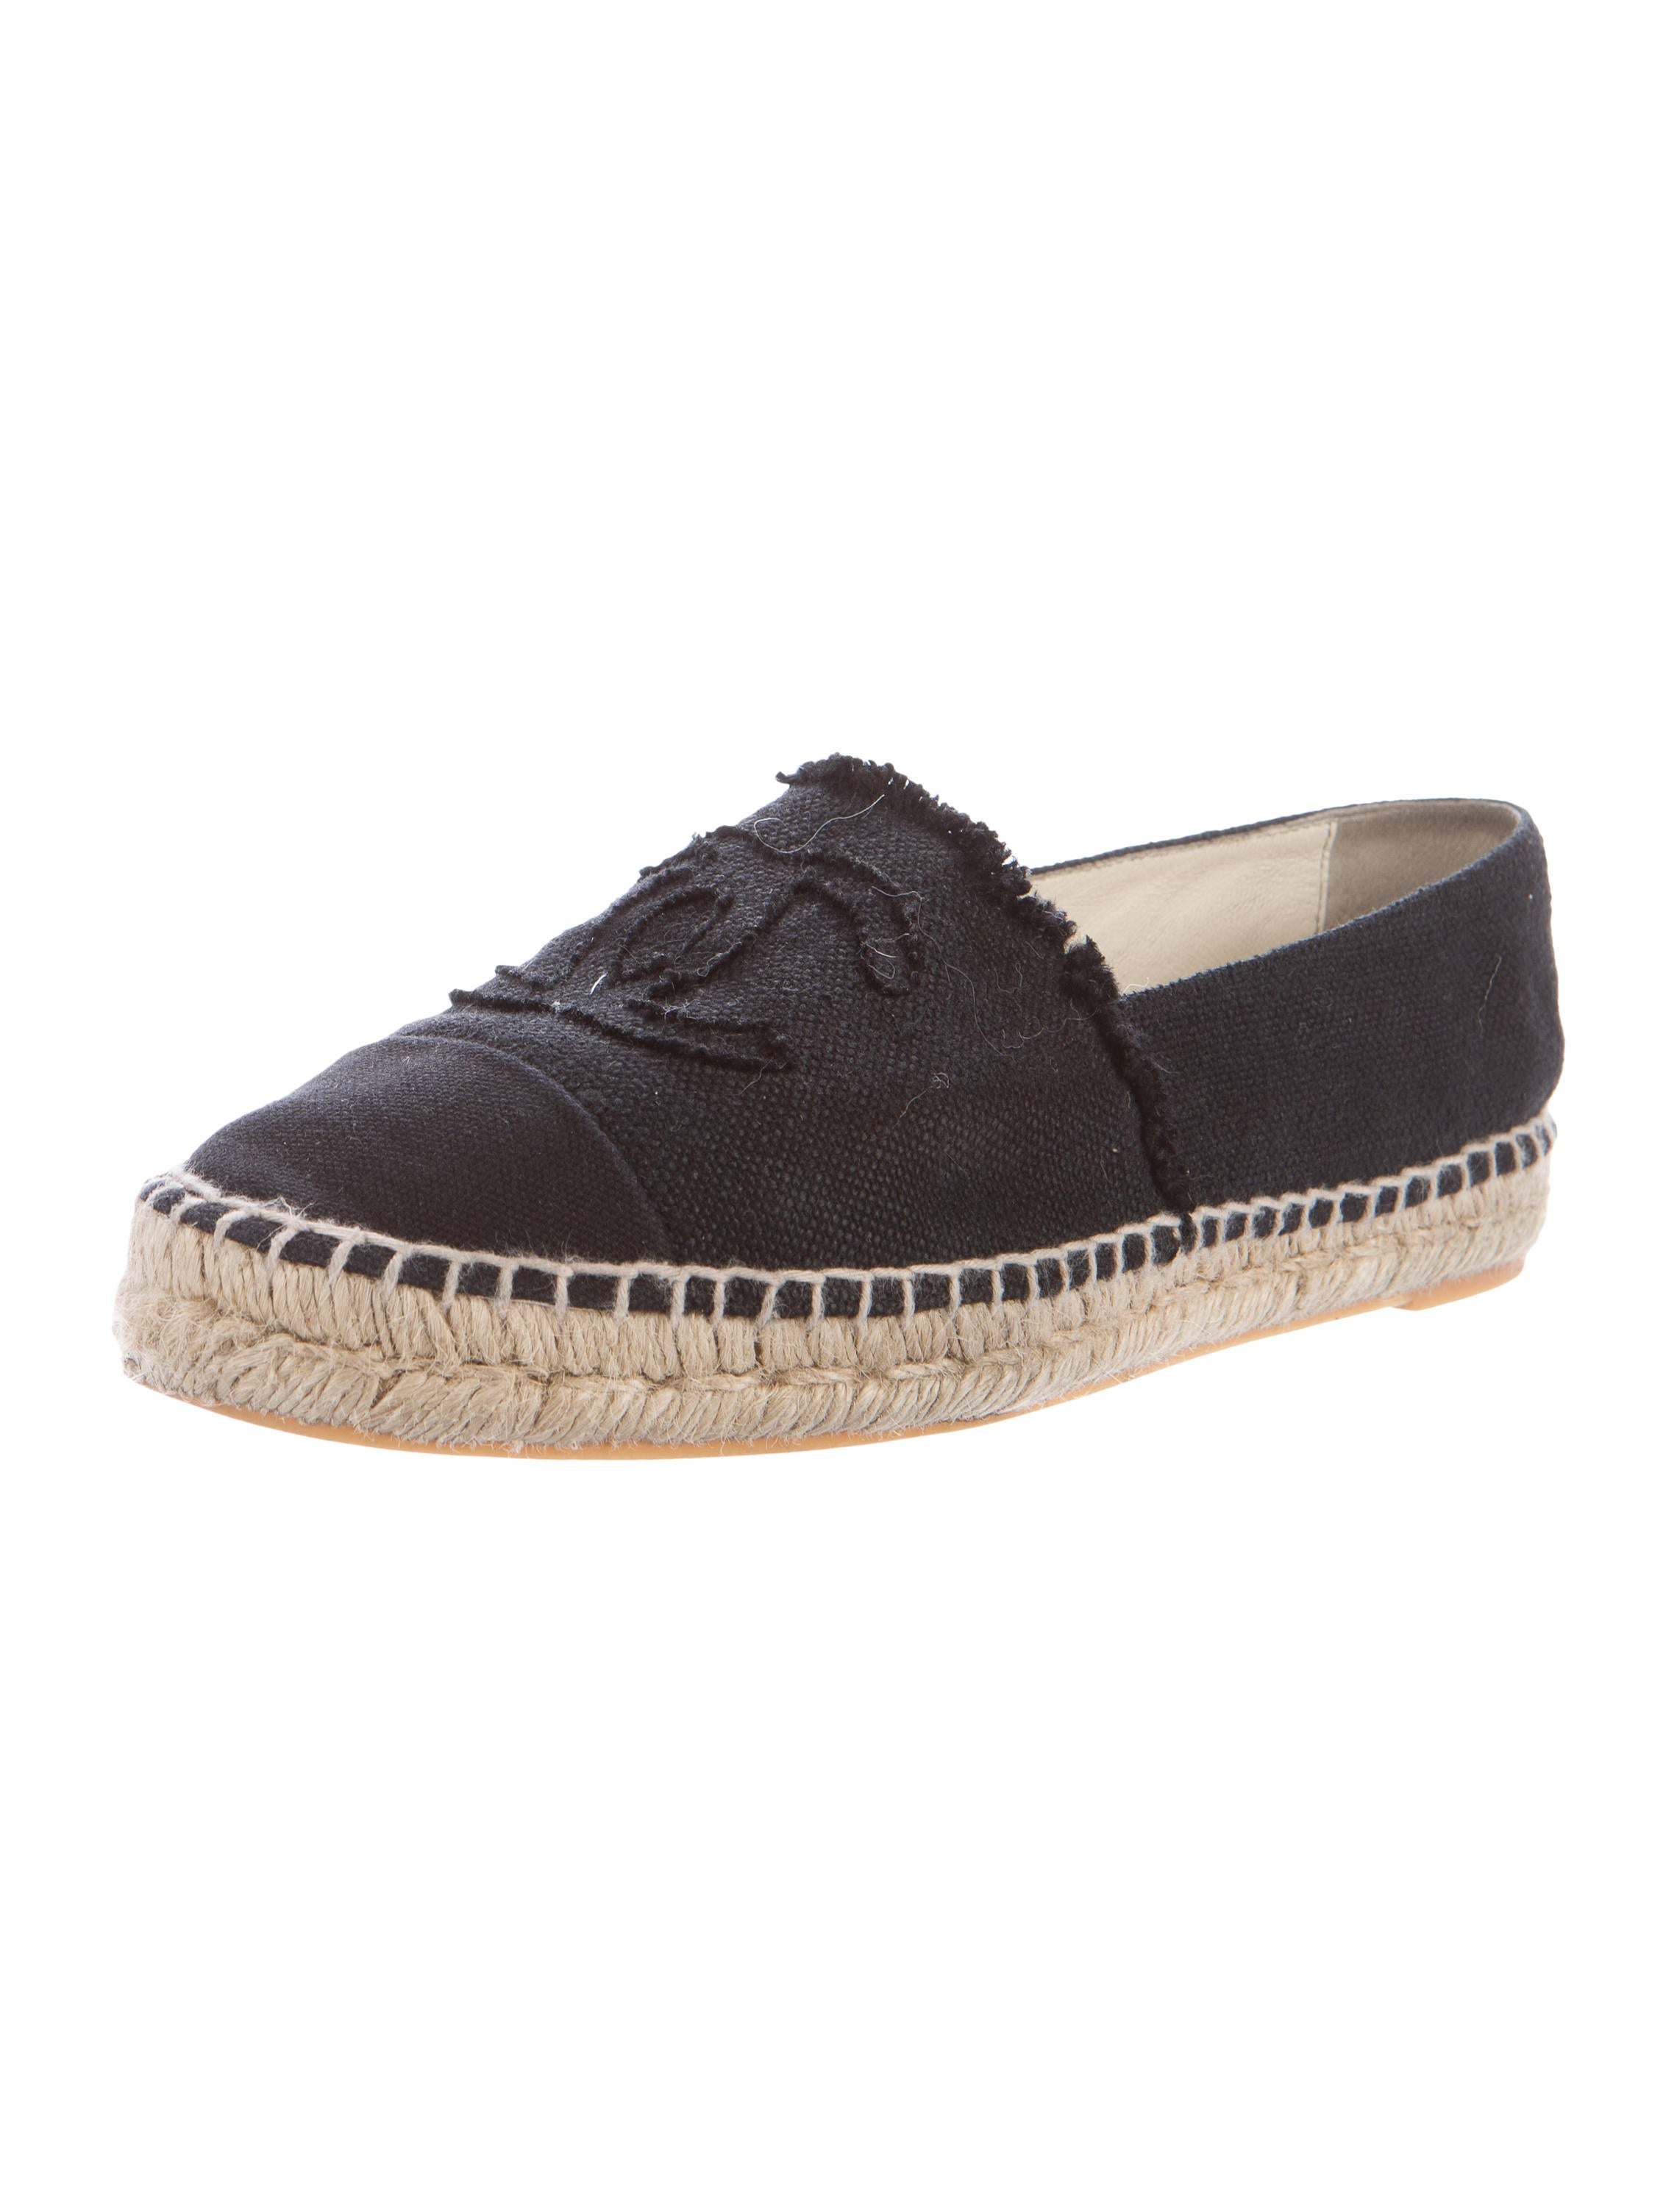 chanel canvas espadrille flats shoes cha166665 the